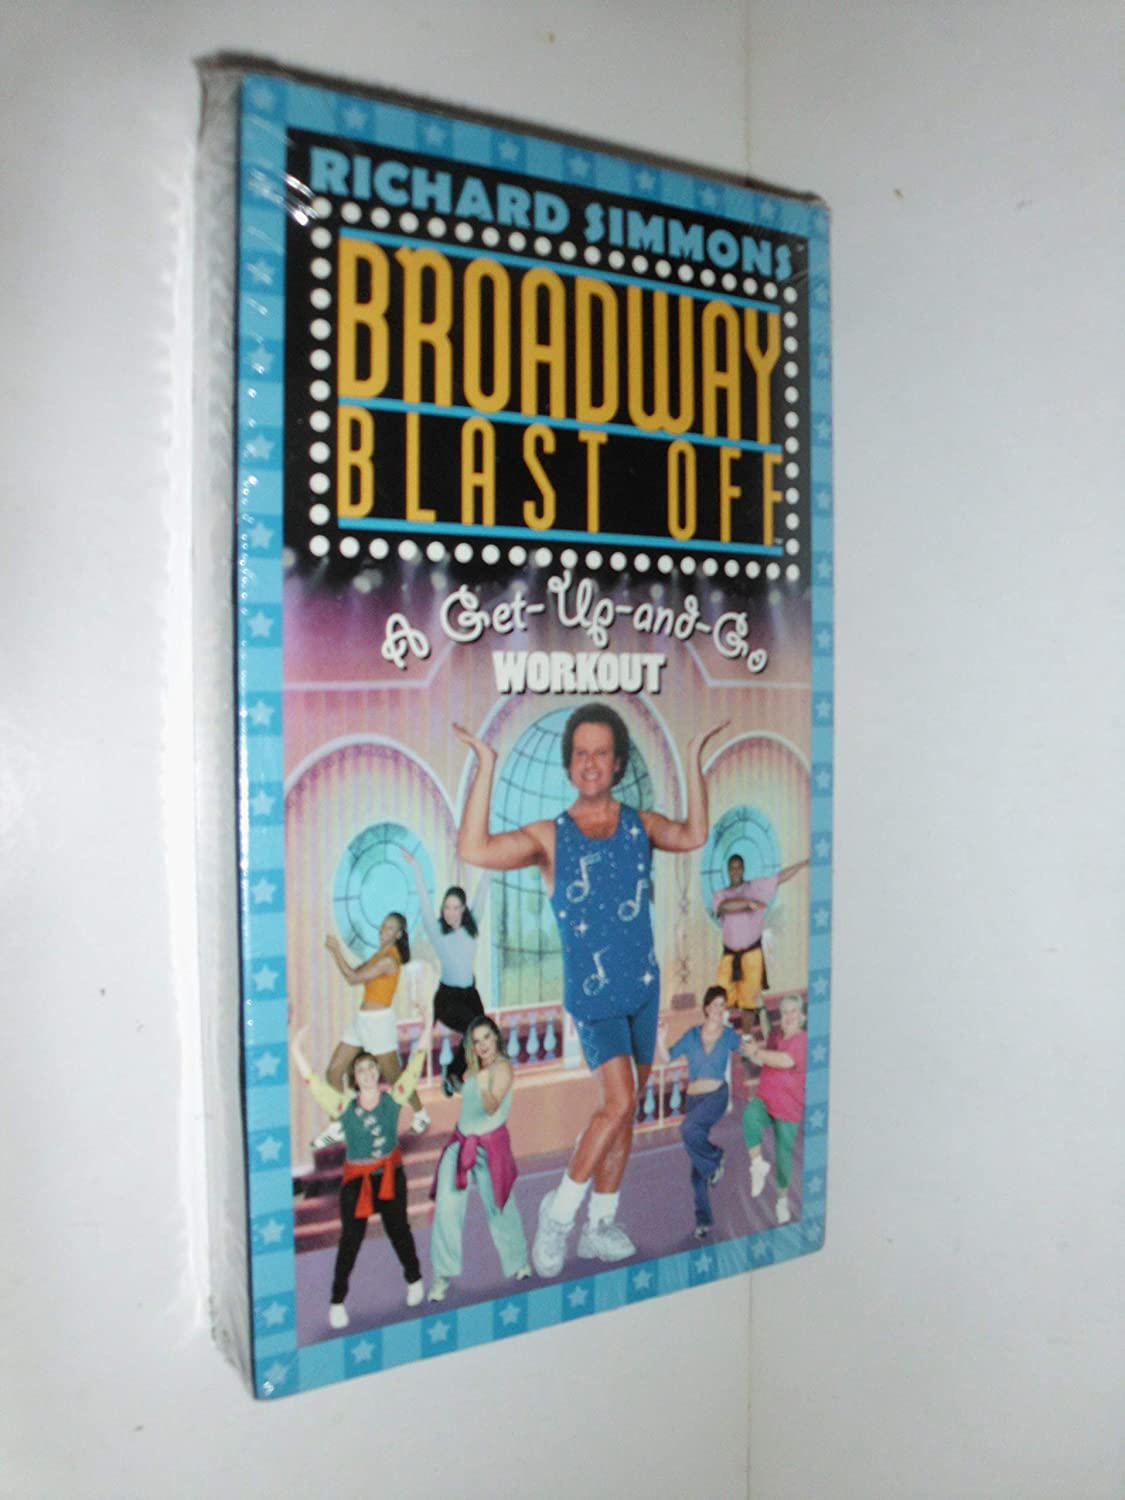 Richard Simmons Broadway Blast Off: A Get-Up-and-Go Workout